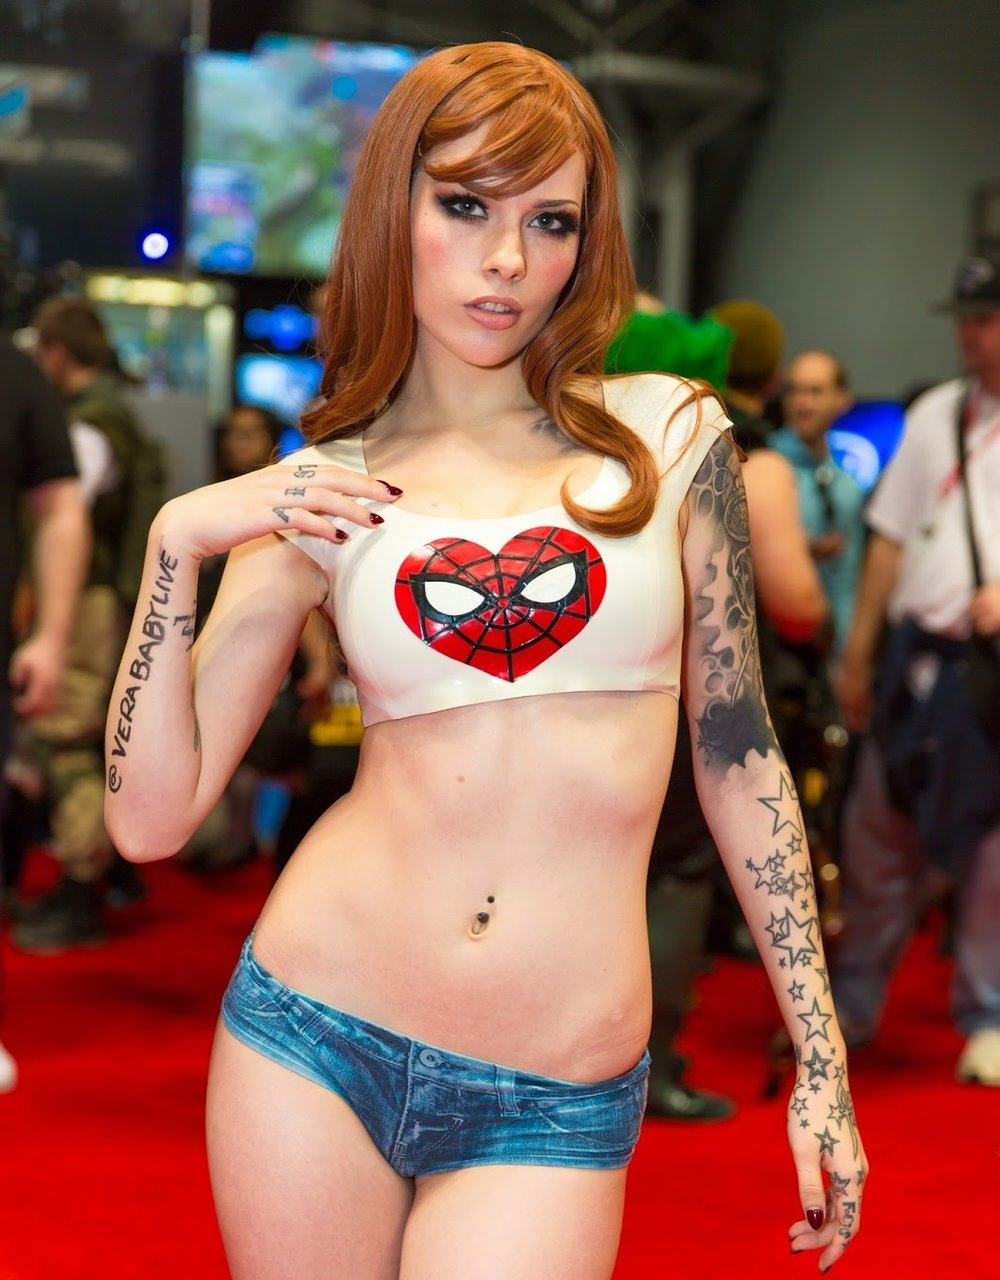 spiderman maryjane cosplay sexy red carpet